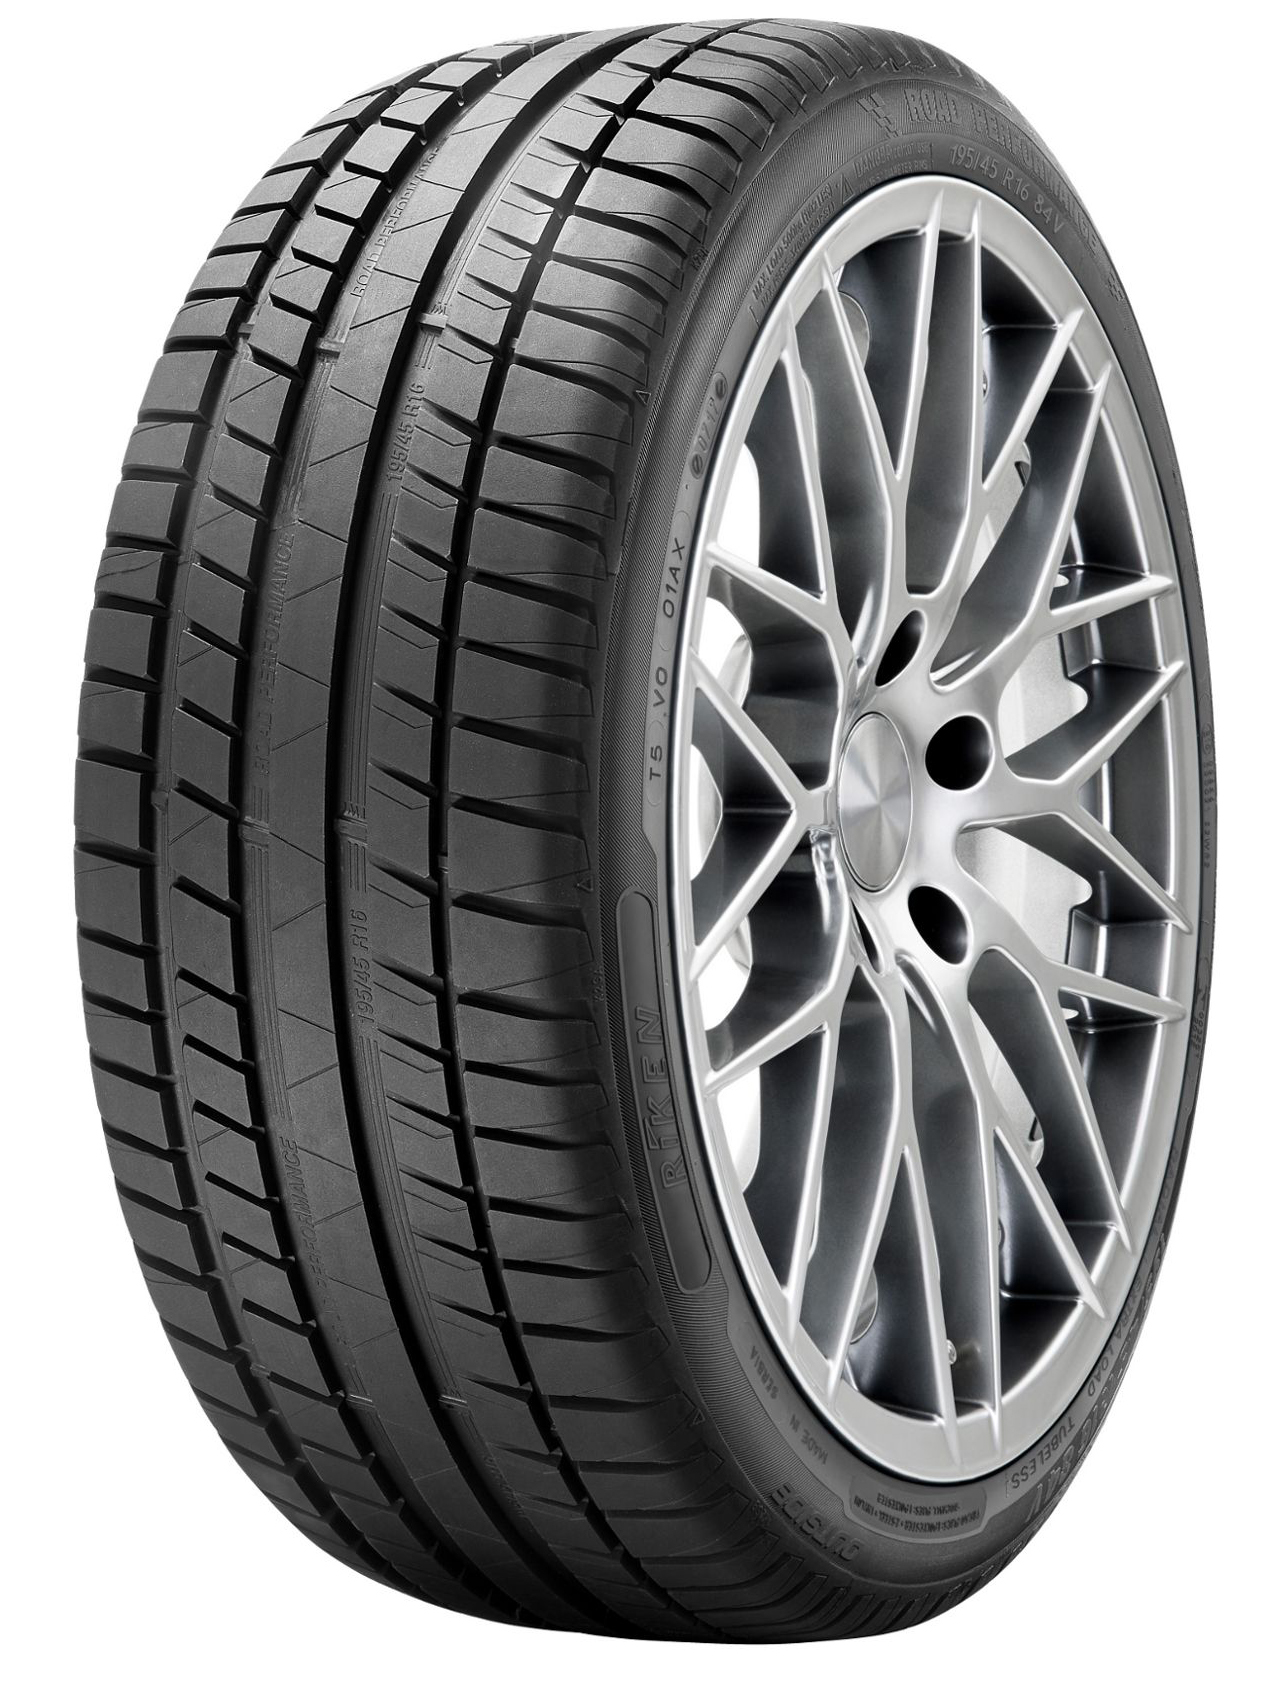 Anvelopa Vara Riken by michelin Road Performance 195/55R16 87H